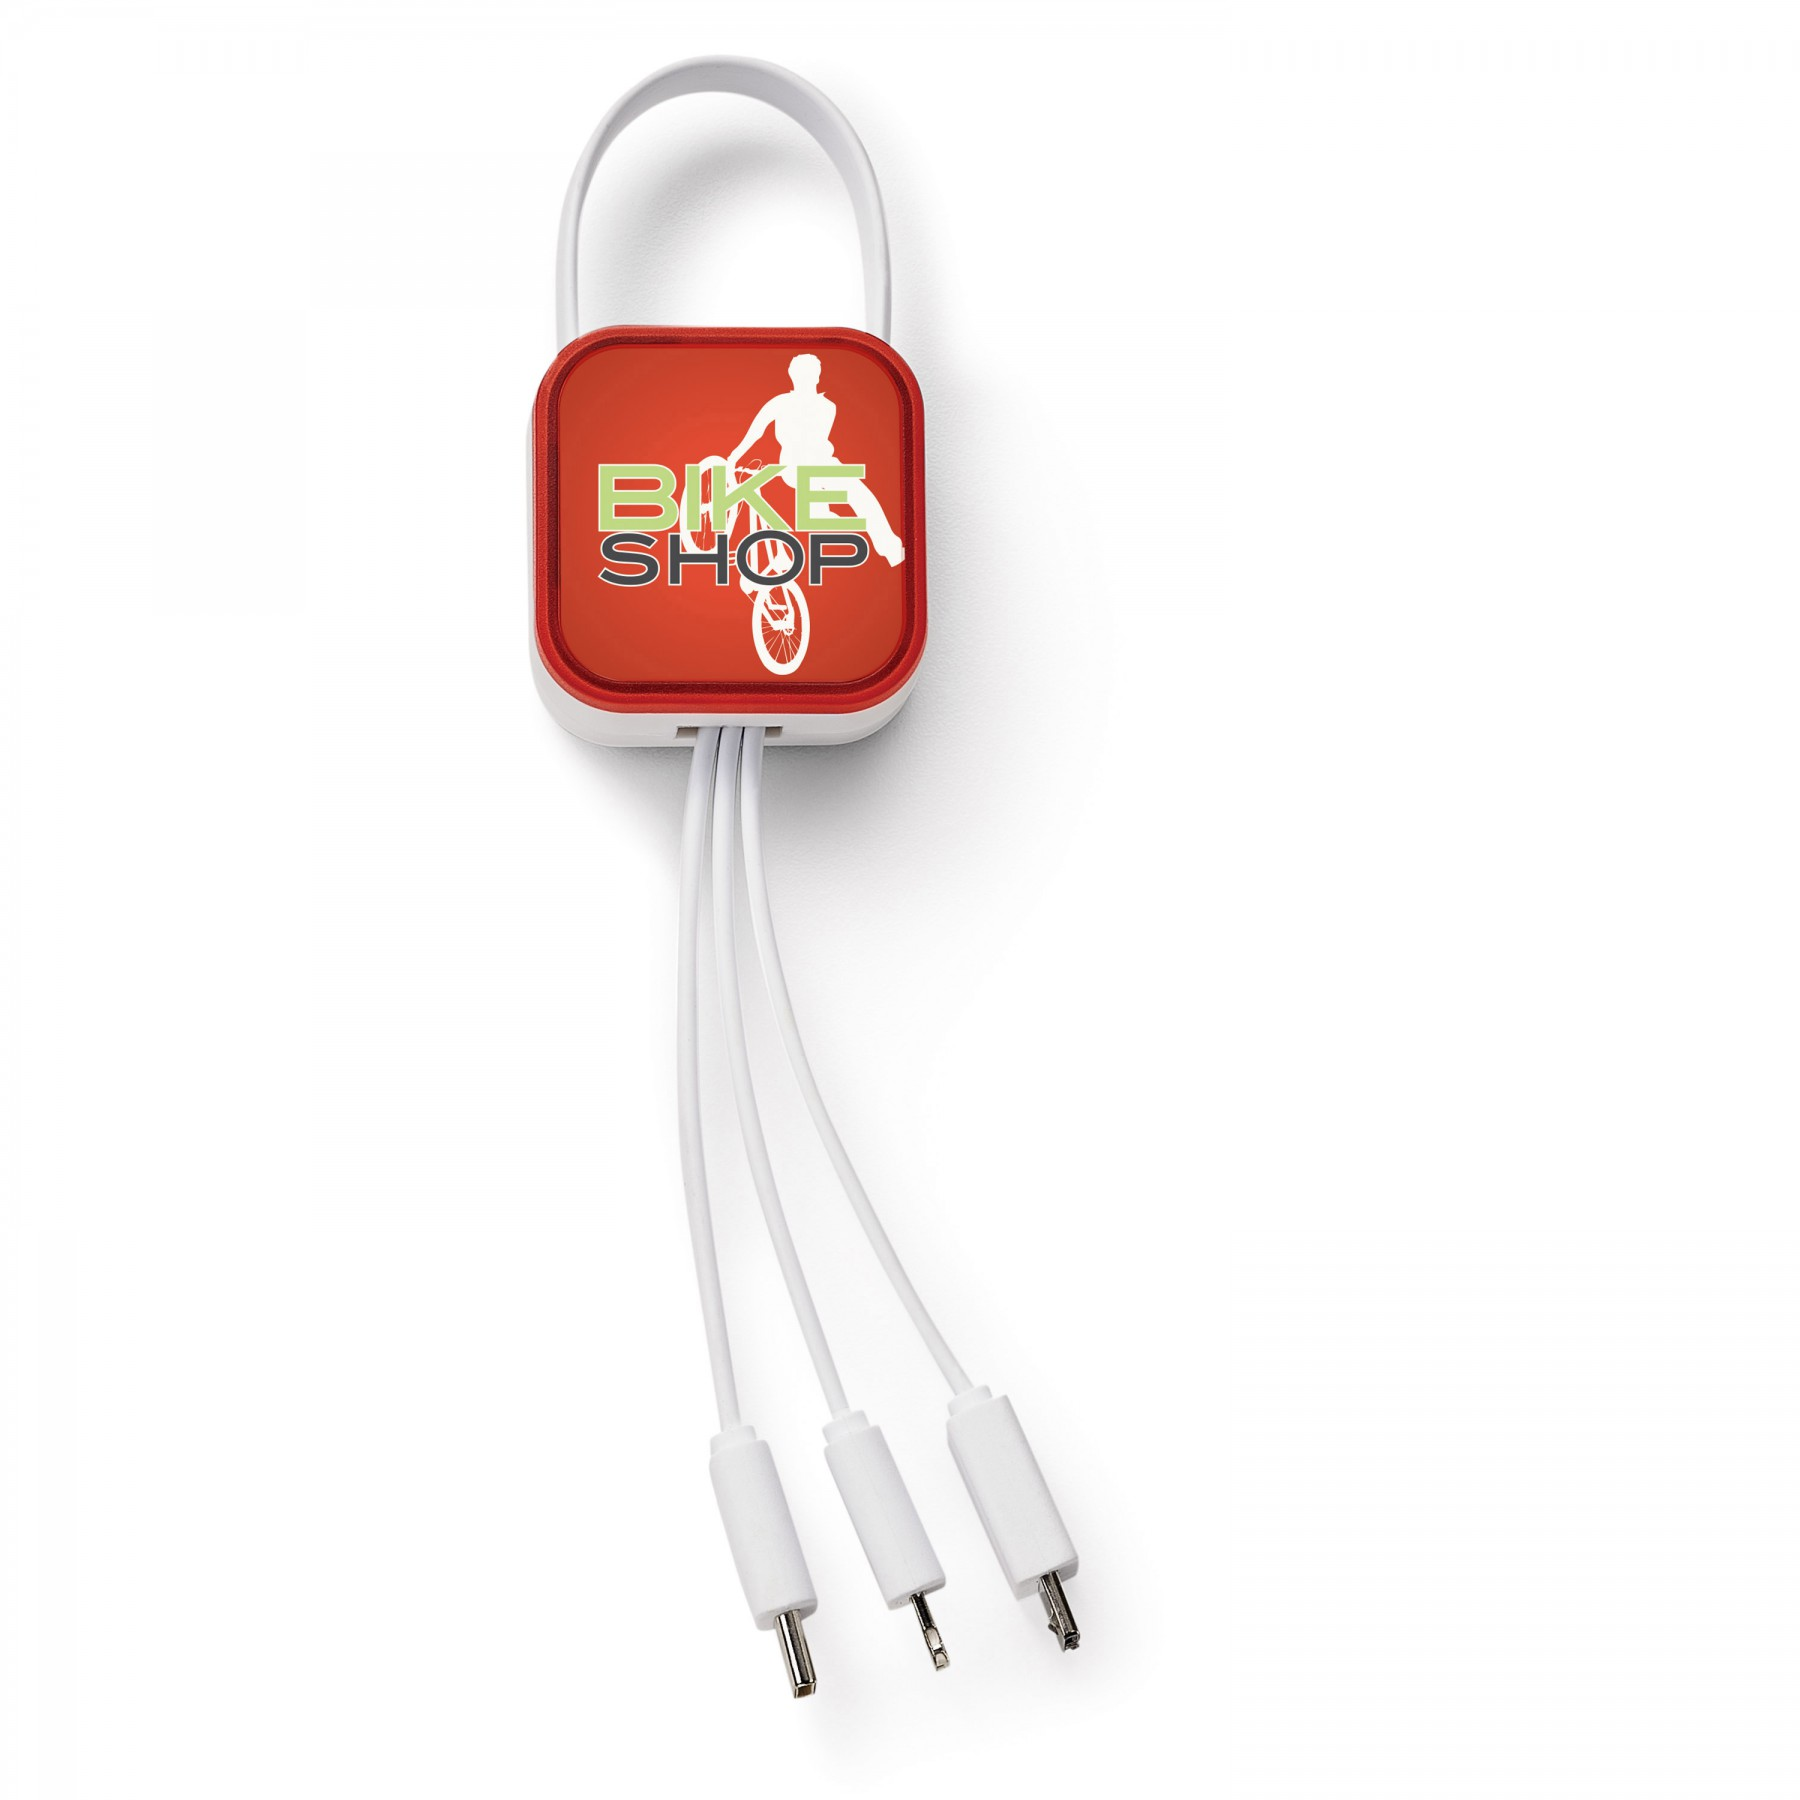 Ray 4-In-1 Charging Cable, T140, Full Colour Imprint